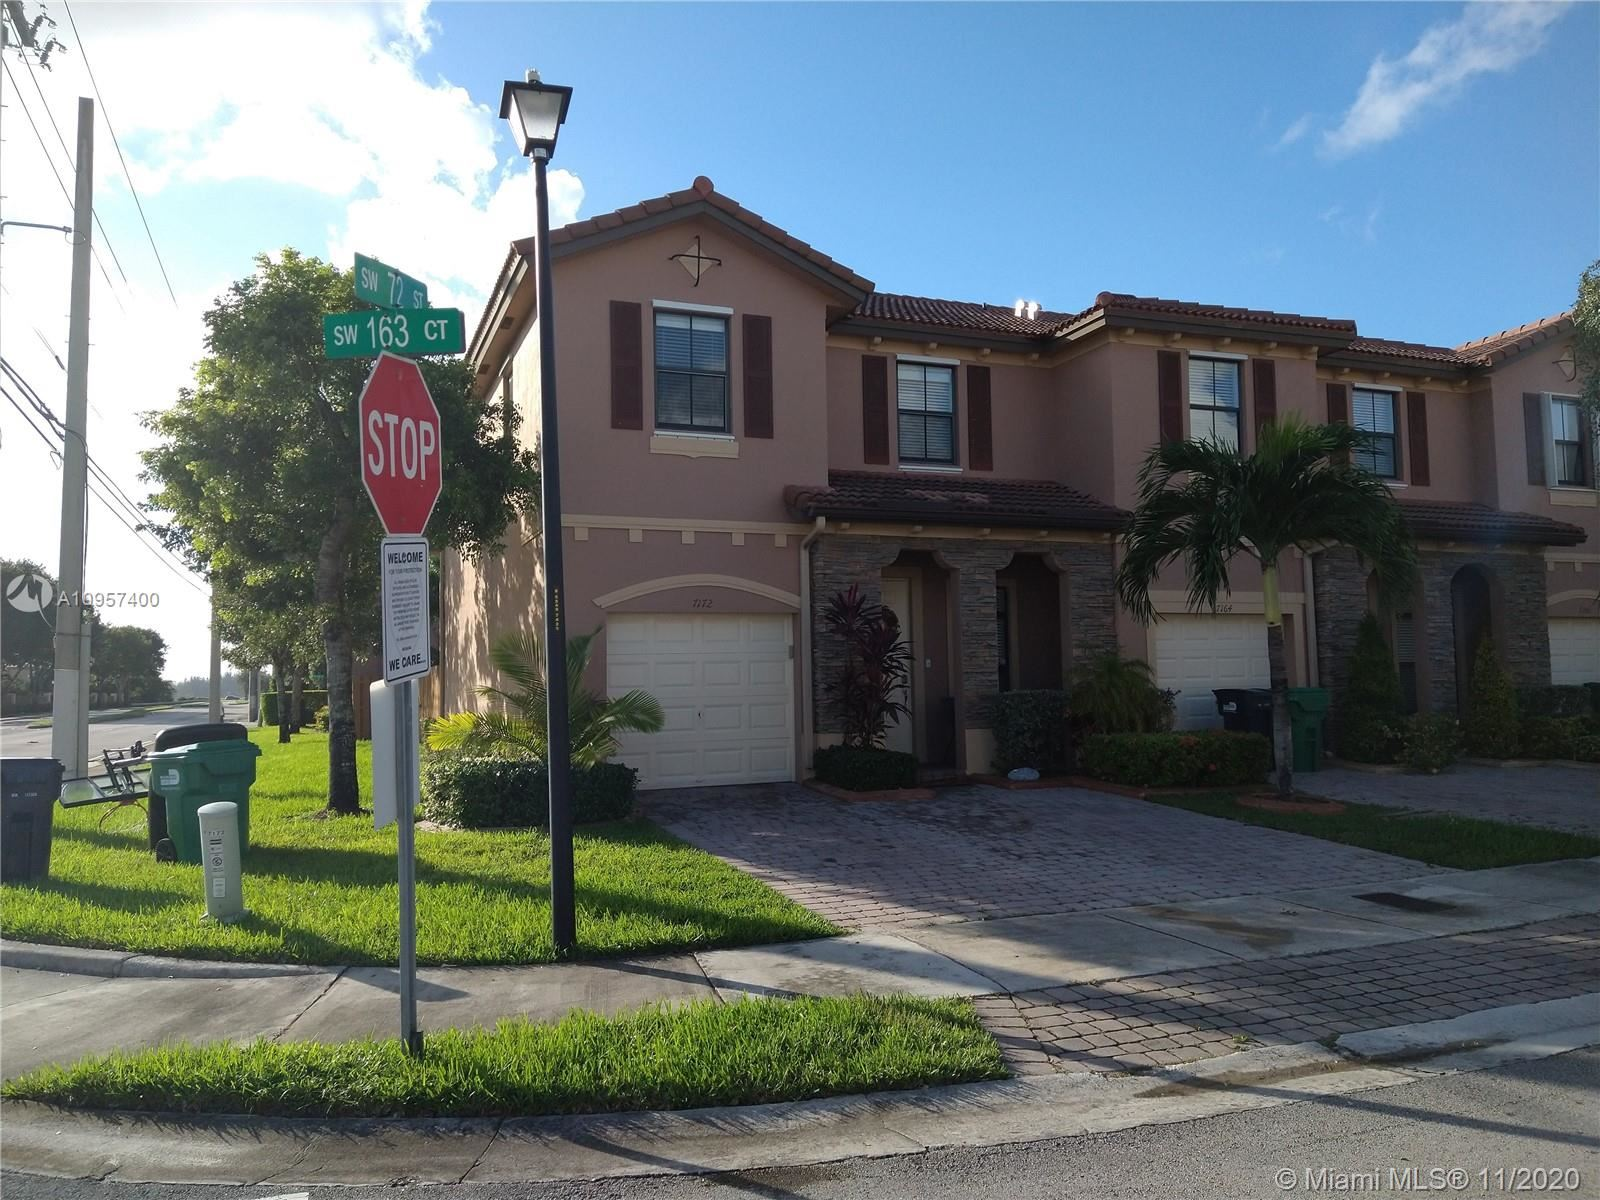 7172 SW 163rd Ct, Miami, FL 33193 - #: A10957400